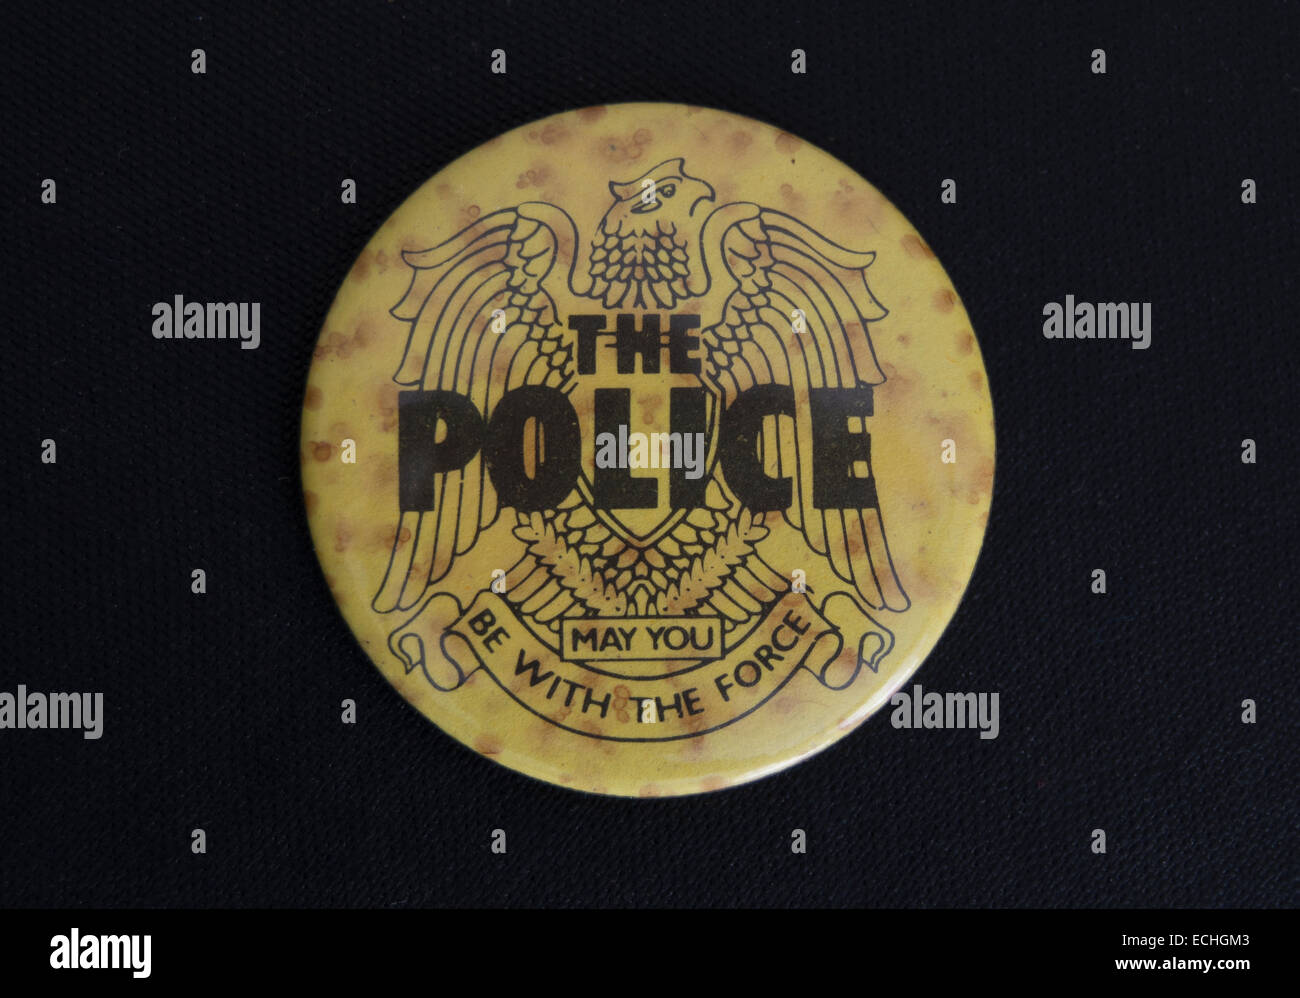 lapel badge promoting the 1970s and 1980s rock band, the police - Stock Image